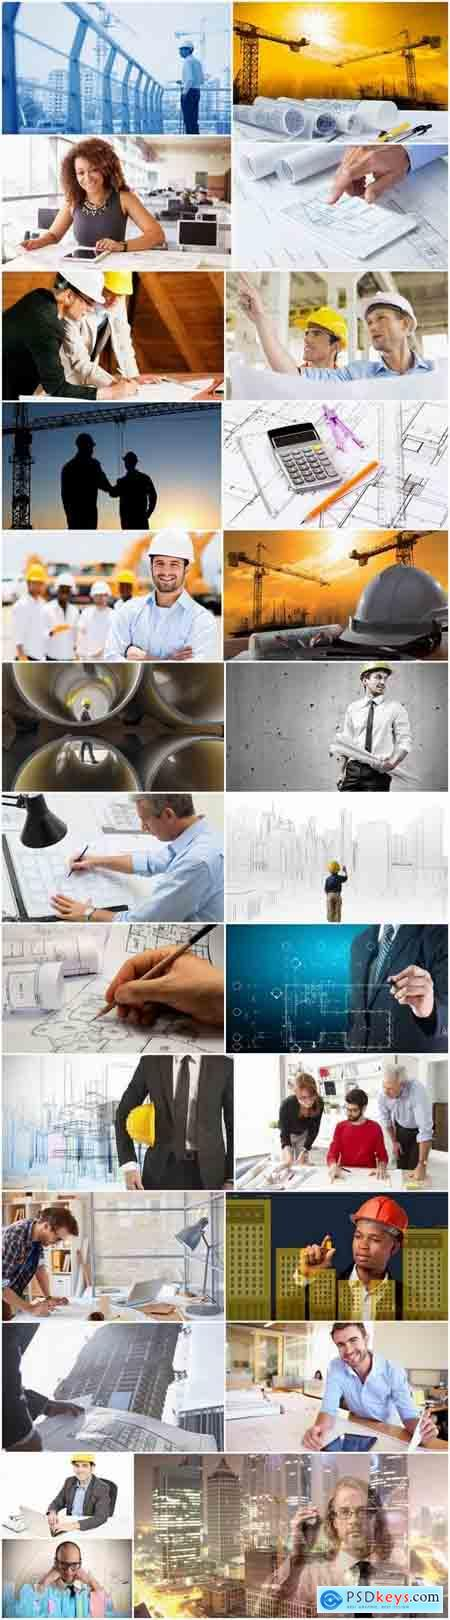 Architect construction superintendent builder master 25 HQ Jpeg